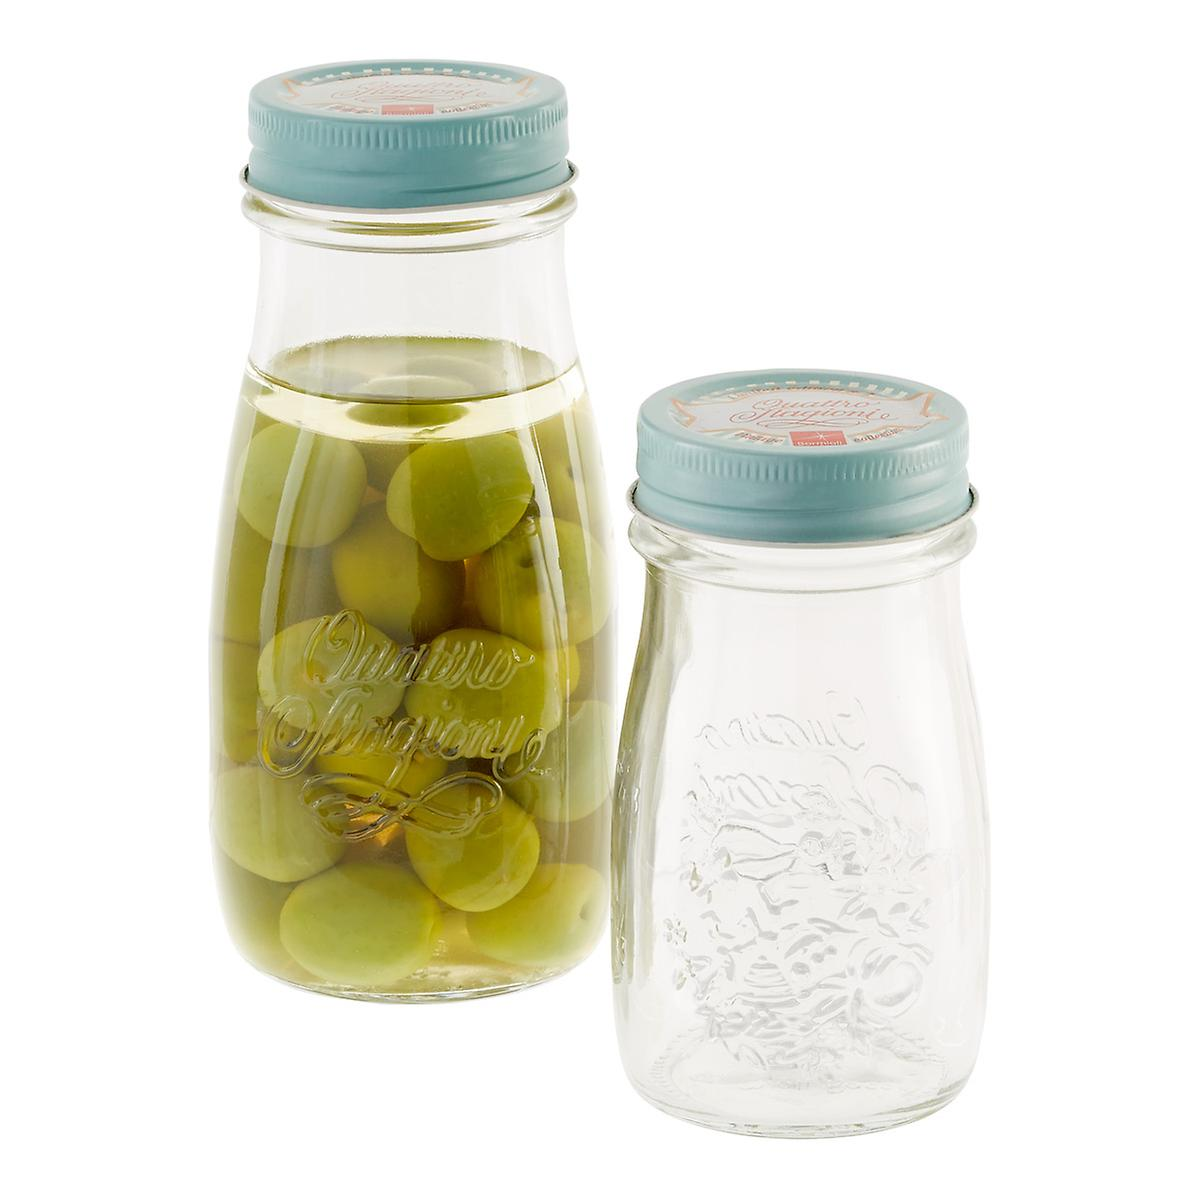 Quattro Stagioni Vintage Glass Bottles The Container Store